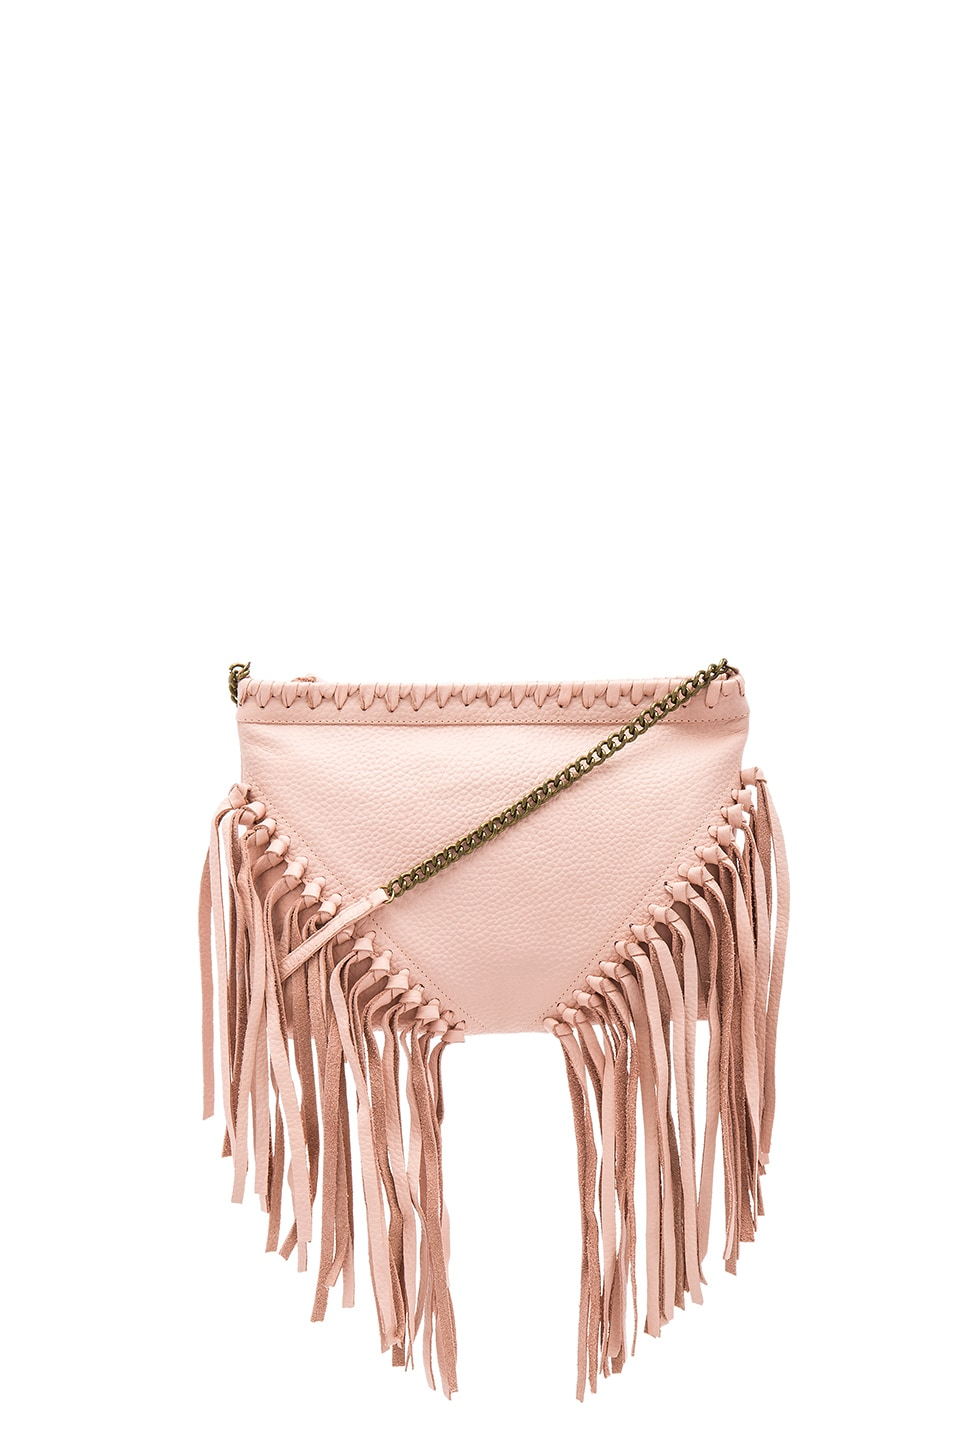 Cleobella Tia Clutch in Blush